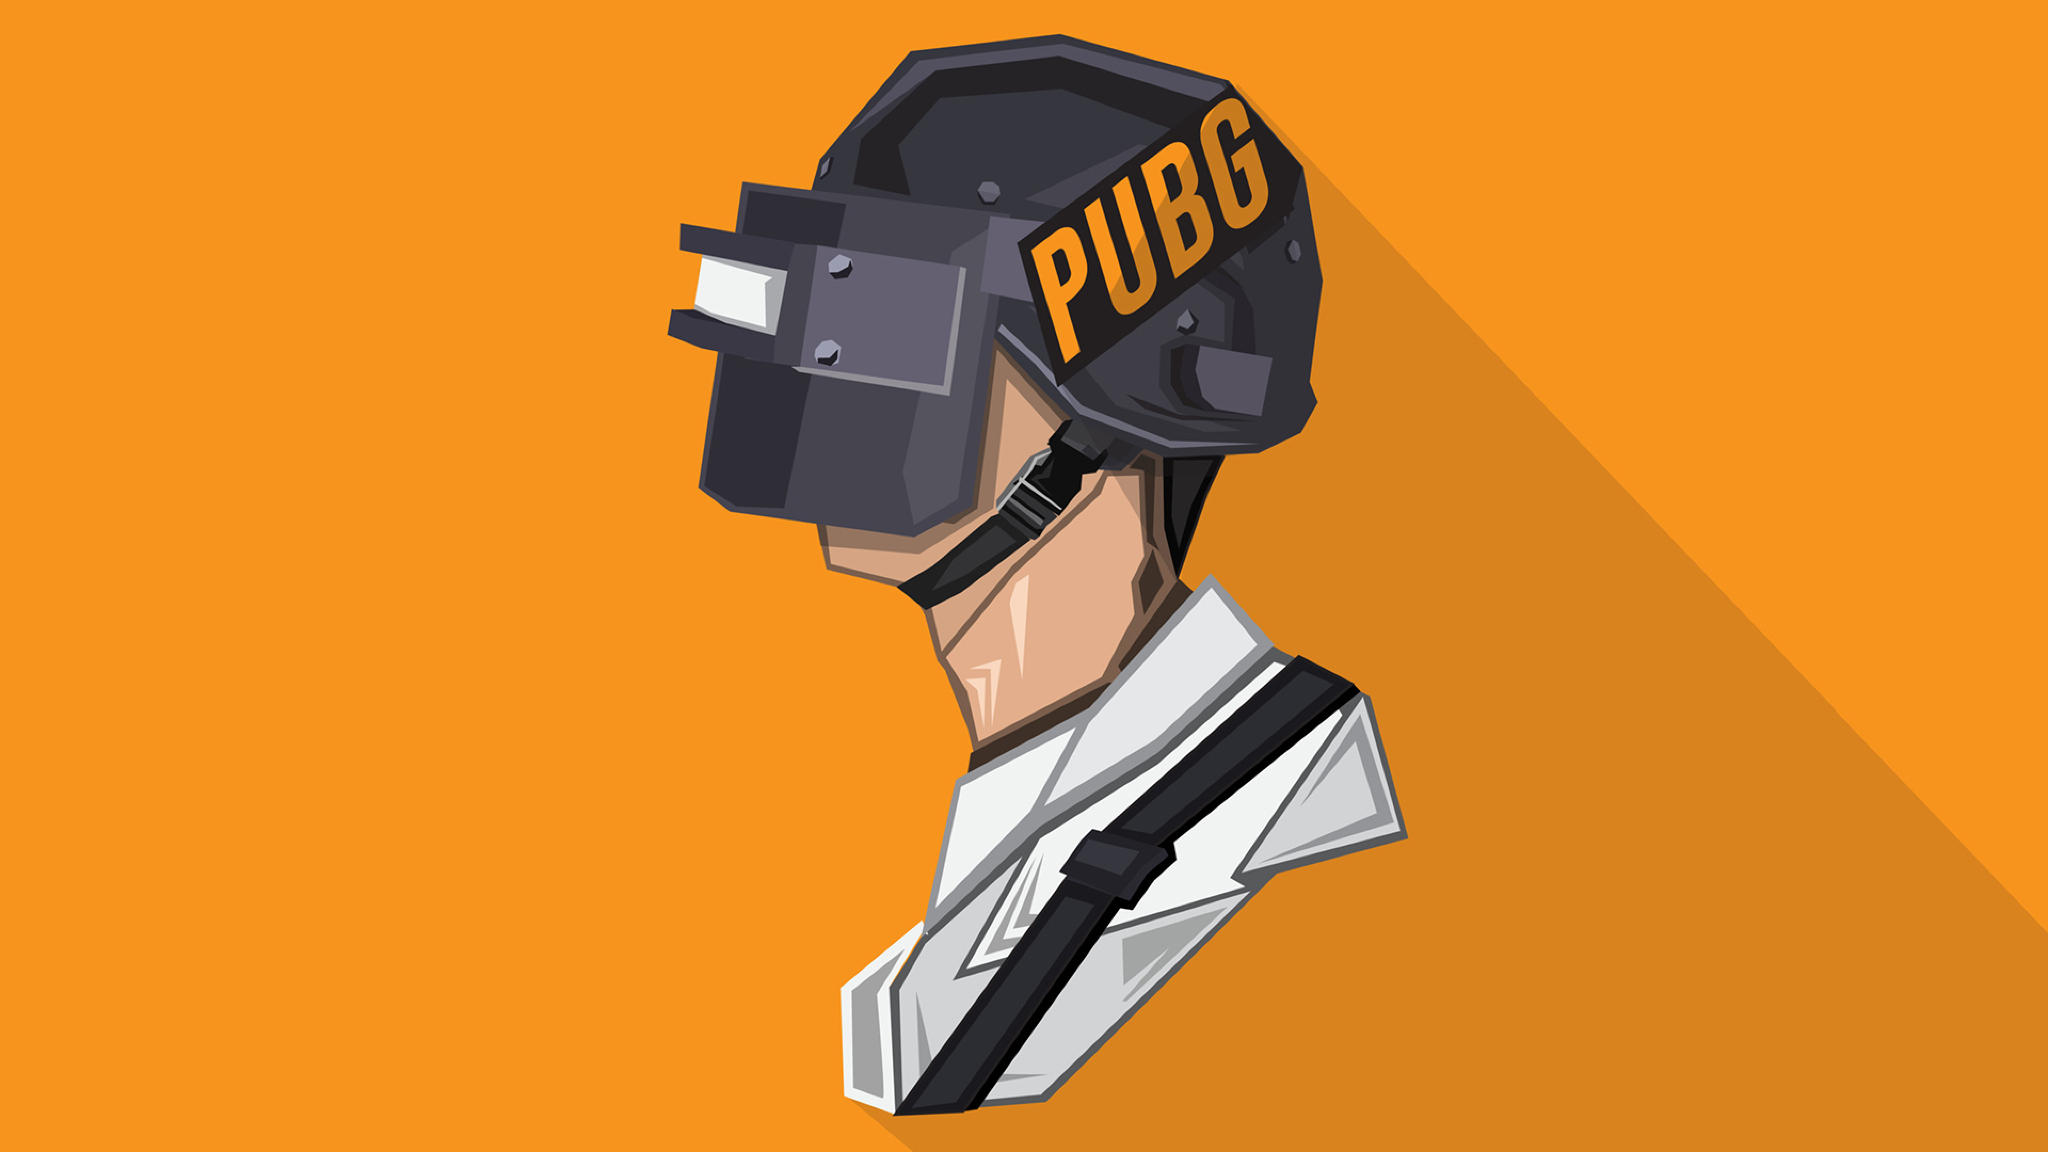 Pubg Hd Wallpaper For Mi Note 4: Pubg Minimalist Pophead, Full HD Wallpaper